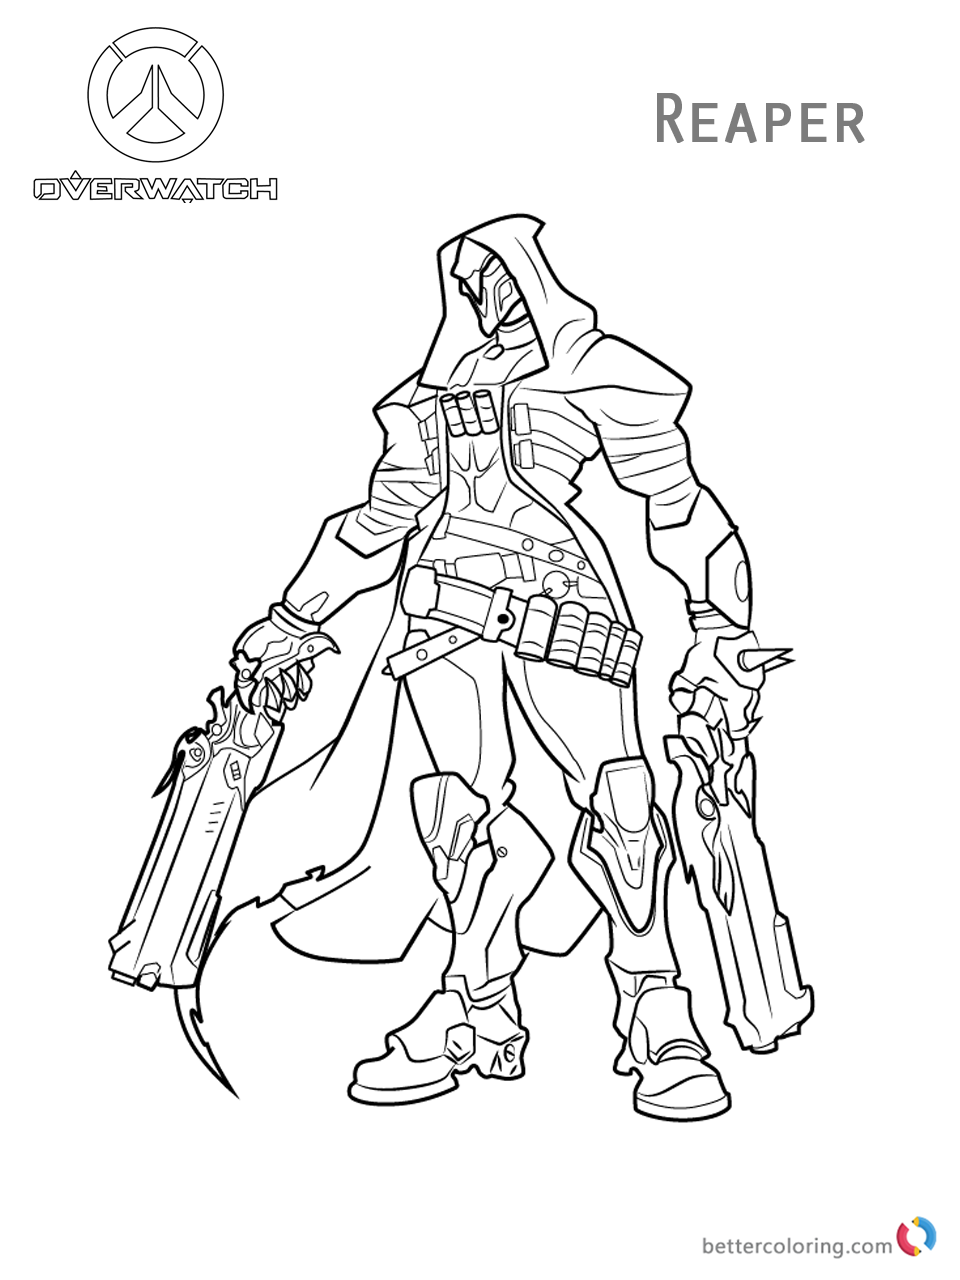 Reaper from Overwatch Coloring